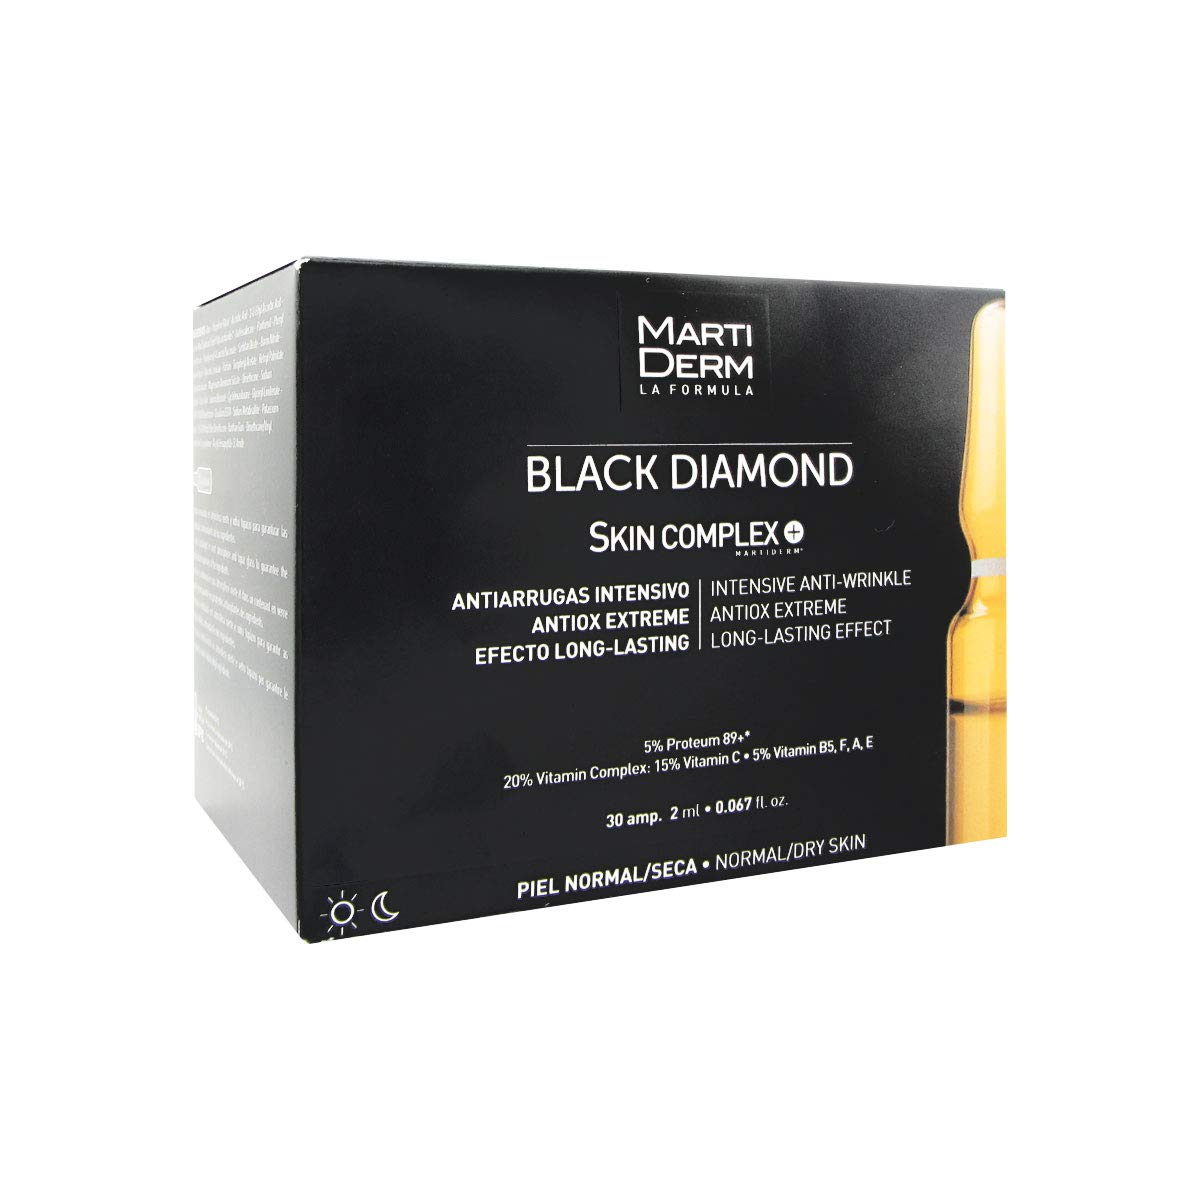 MARTIDERM Black Diamond Skin Complex 30 Ampollas x 2ML NEW!!! 185980